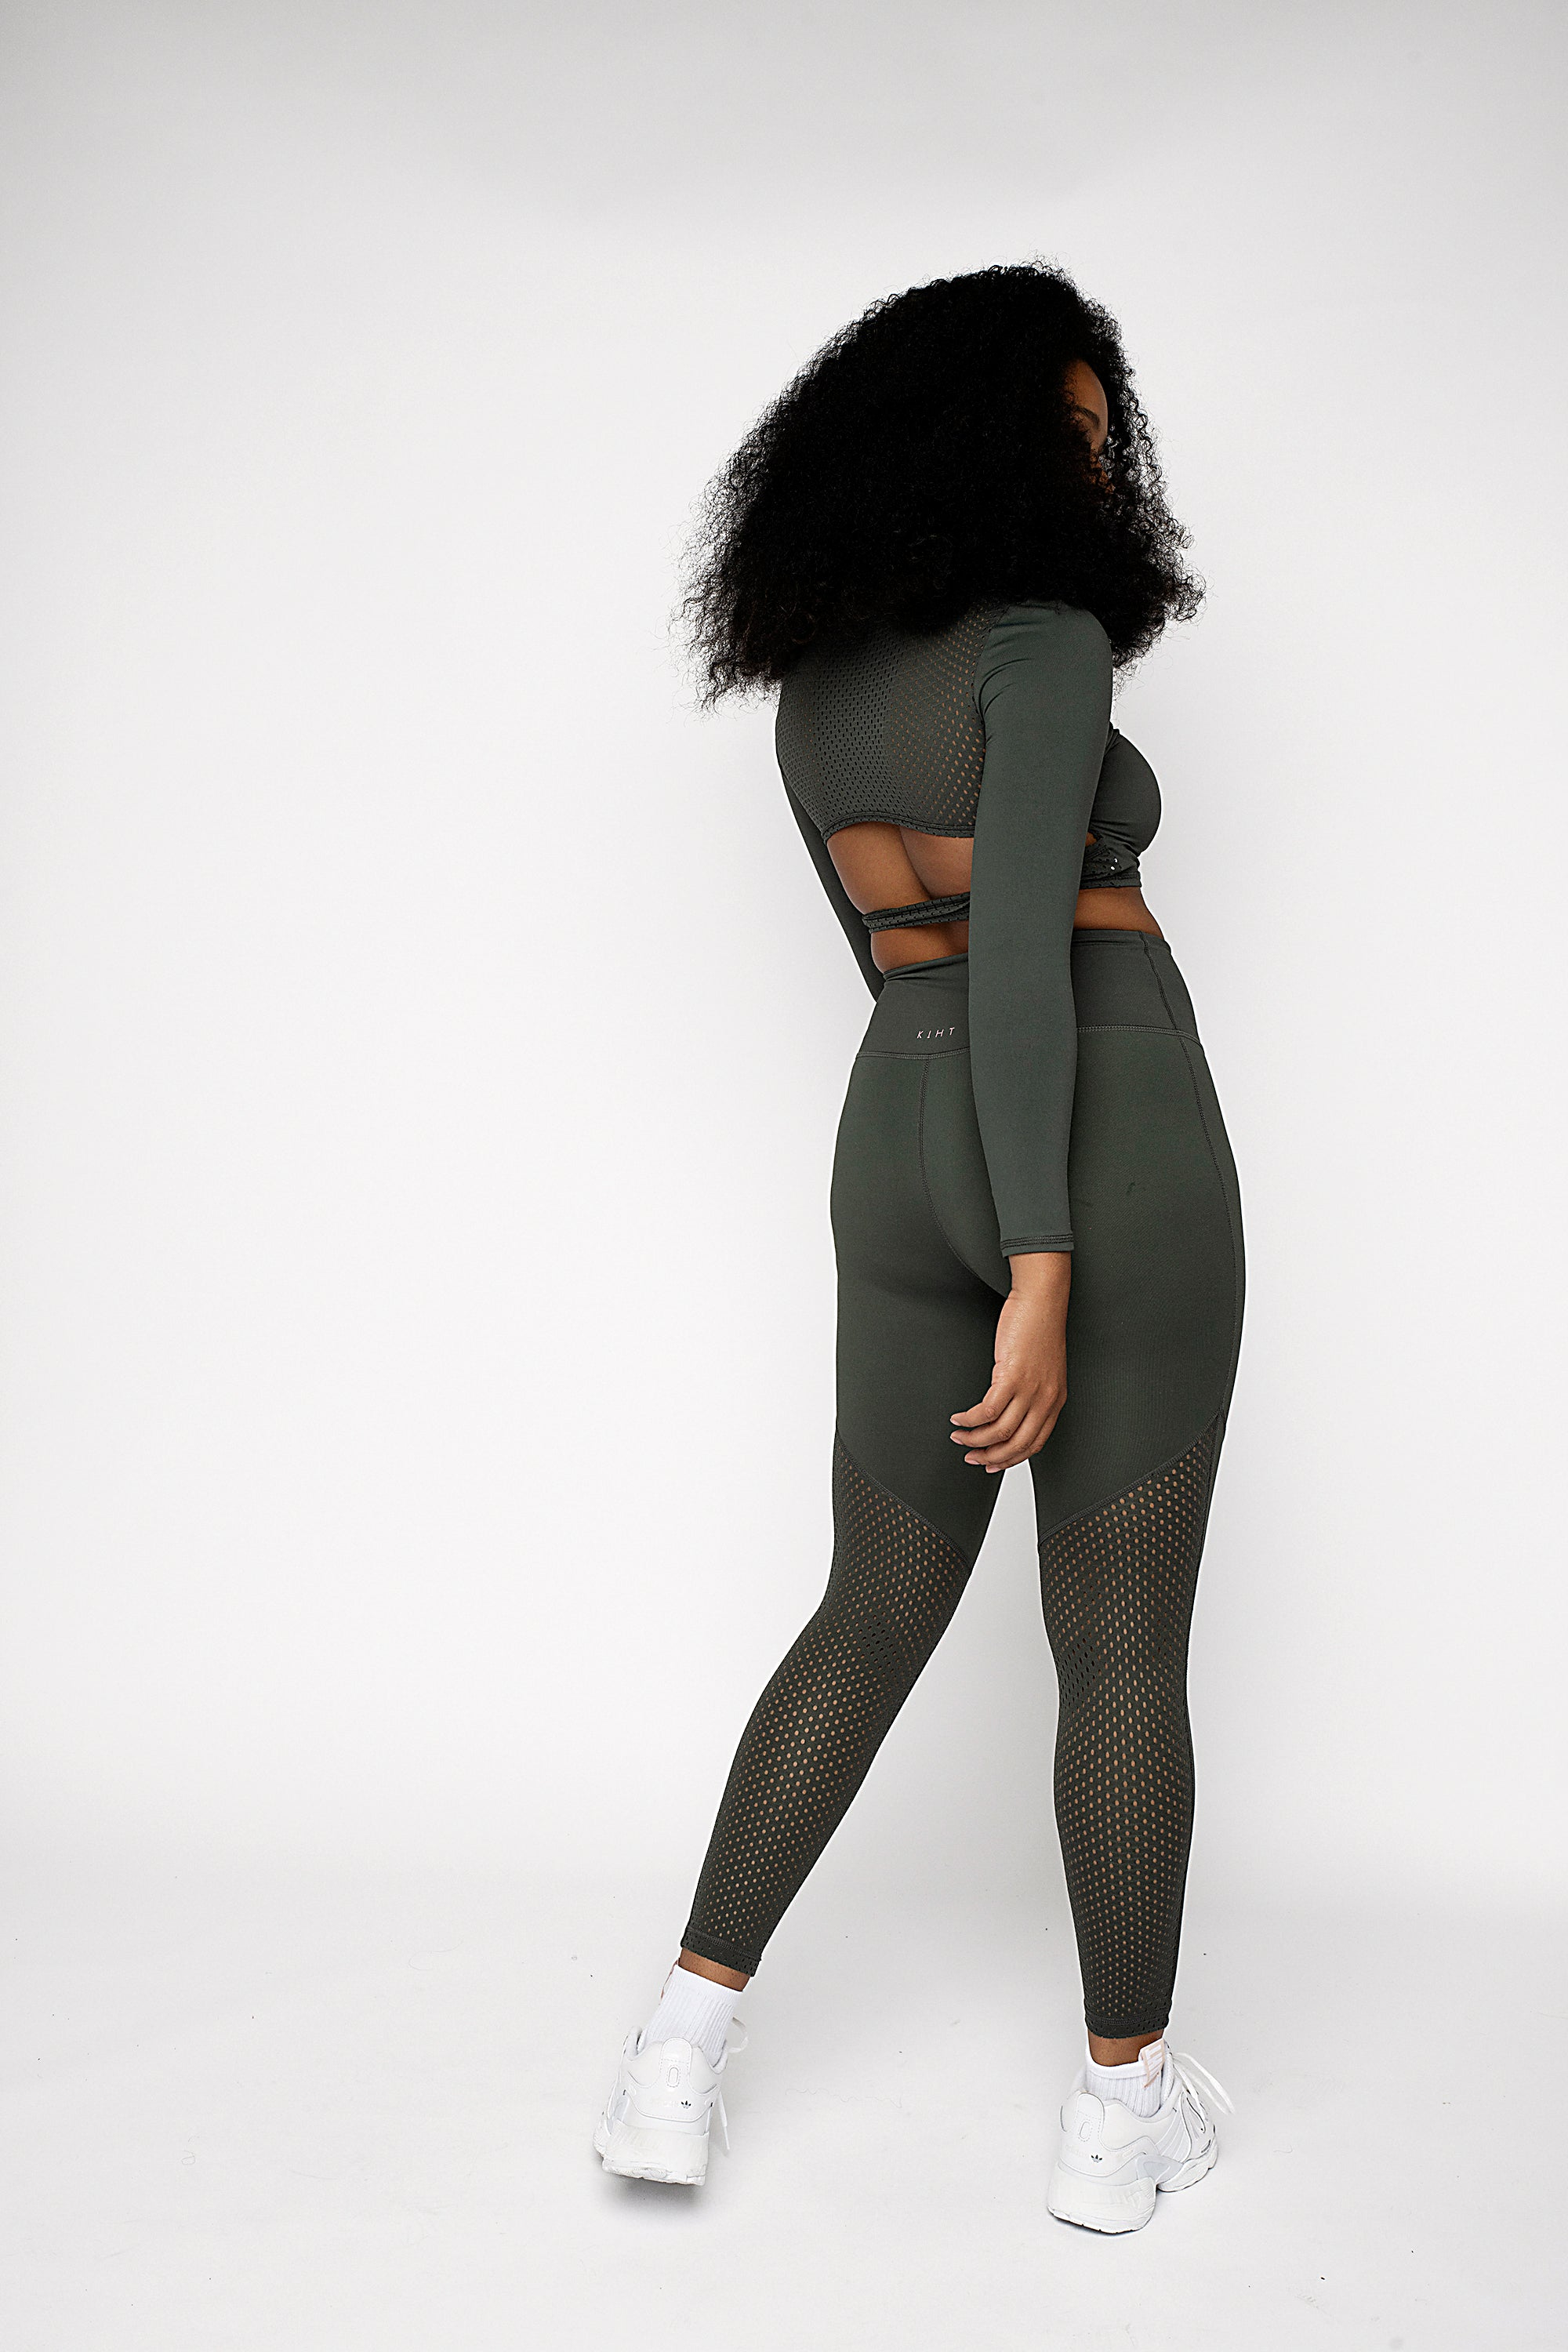 High waisted jungle khaki gym legging with punched panel back detail on the legs. Angled flattering seams on the front and back, compressive flattering fit